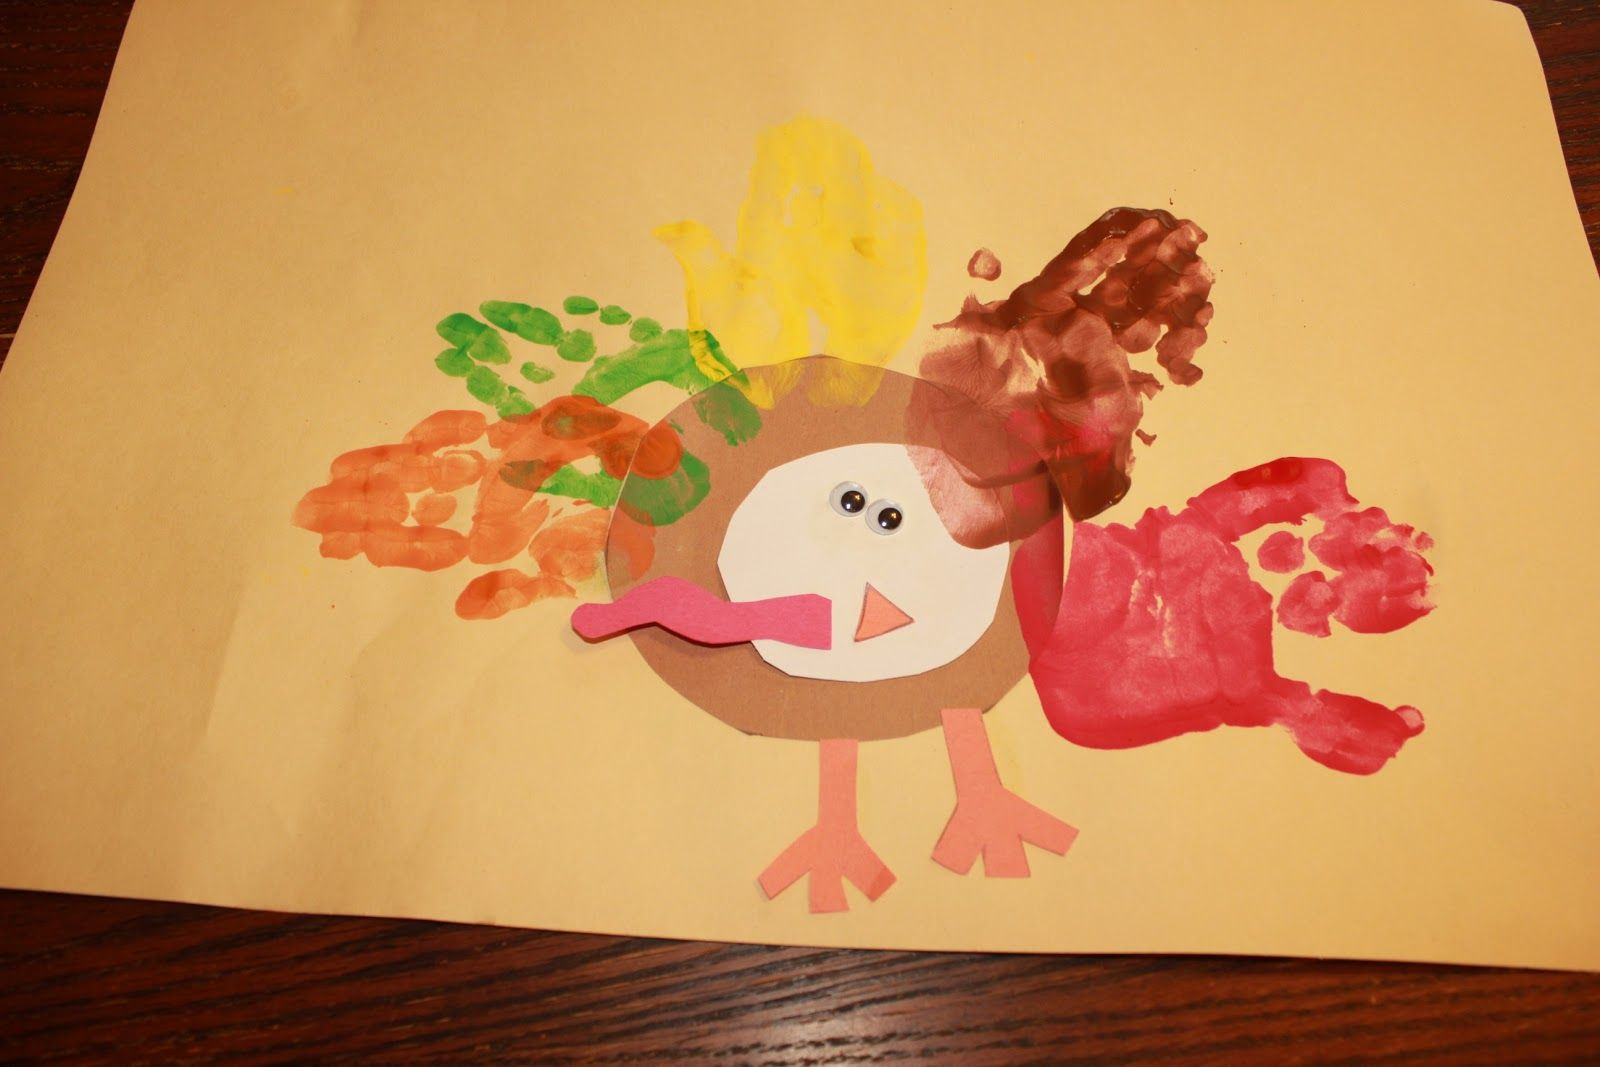 This Would Be A Great Turkey Craft For Thanksgiving For My Two Year Olds They Love Feeling The